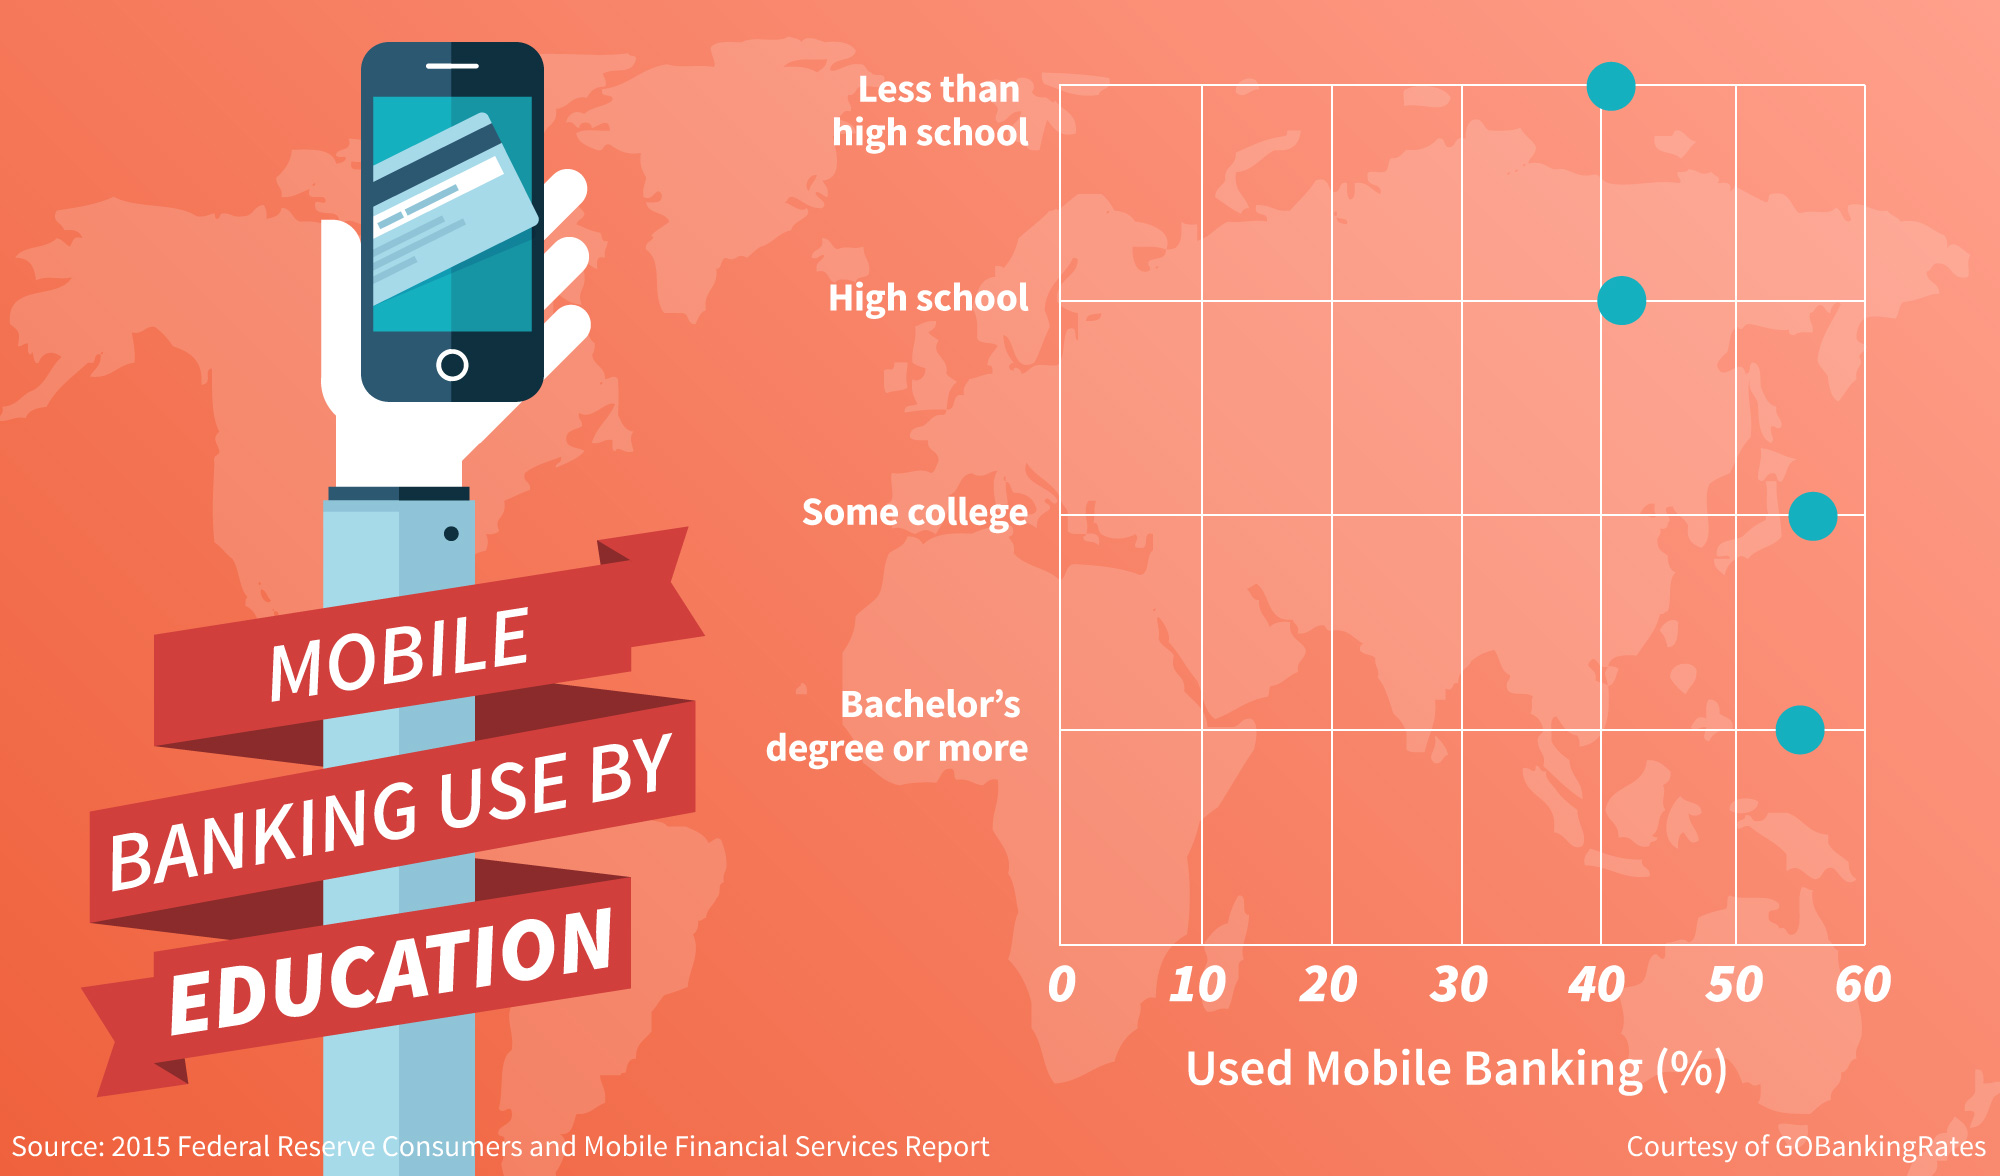 History of Online Banking - mobile banking users by education level